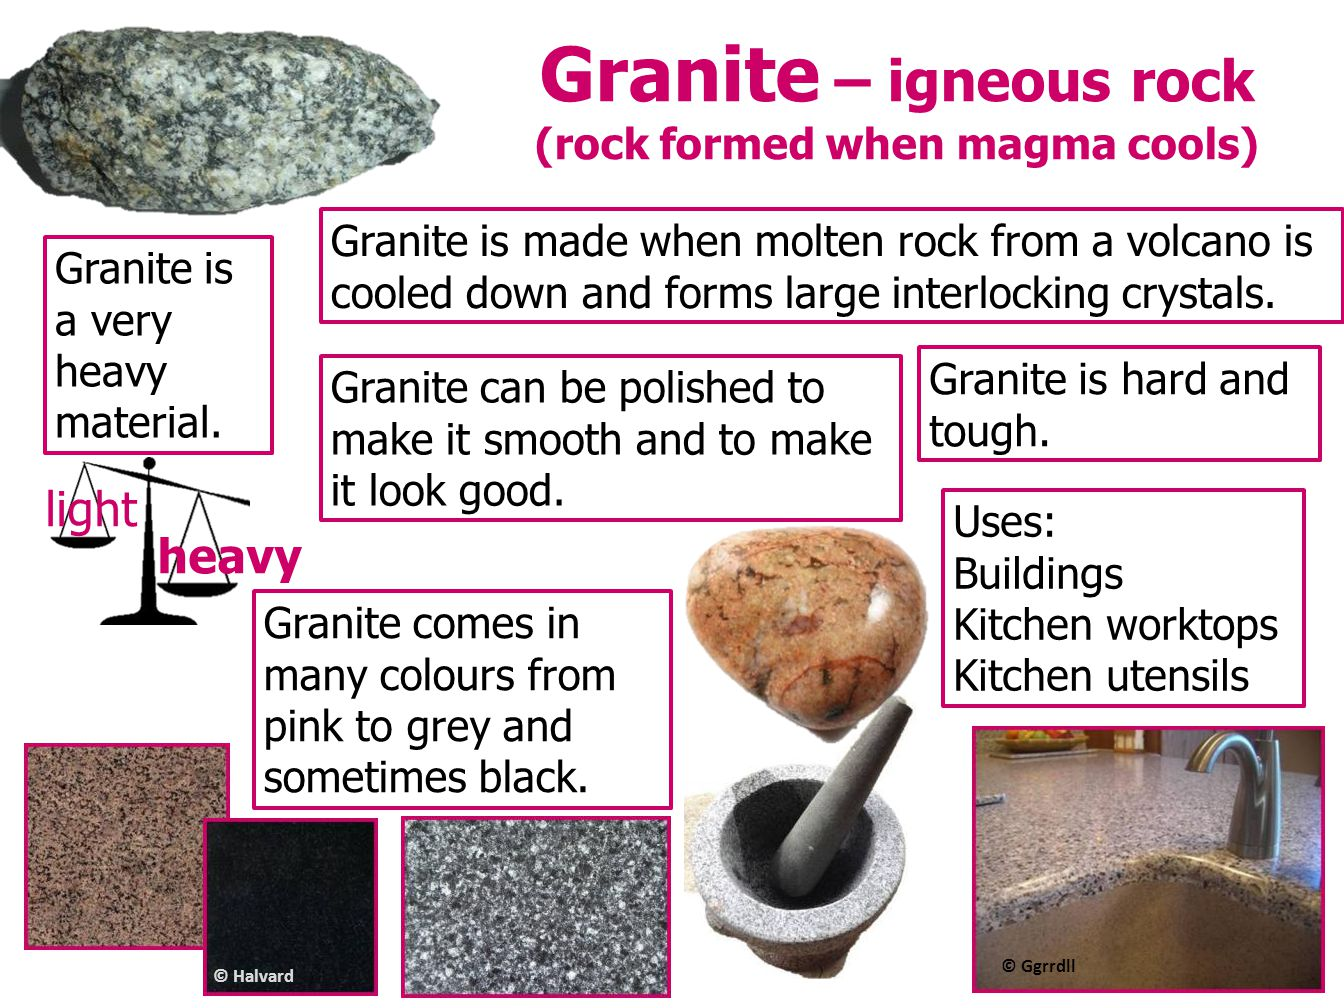 Granite – igneous rock (rock formed when magma cools)